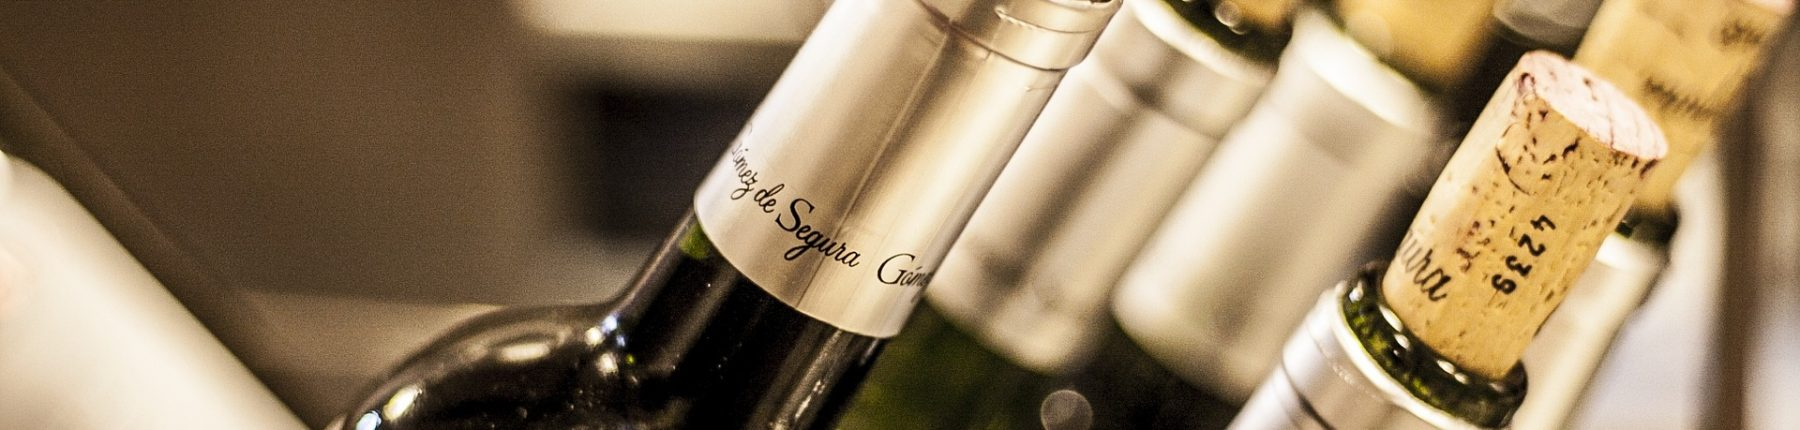 Several bottles of Gomez de Segura wine ready to drink